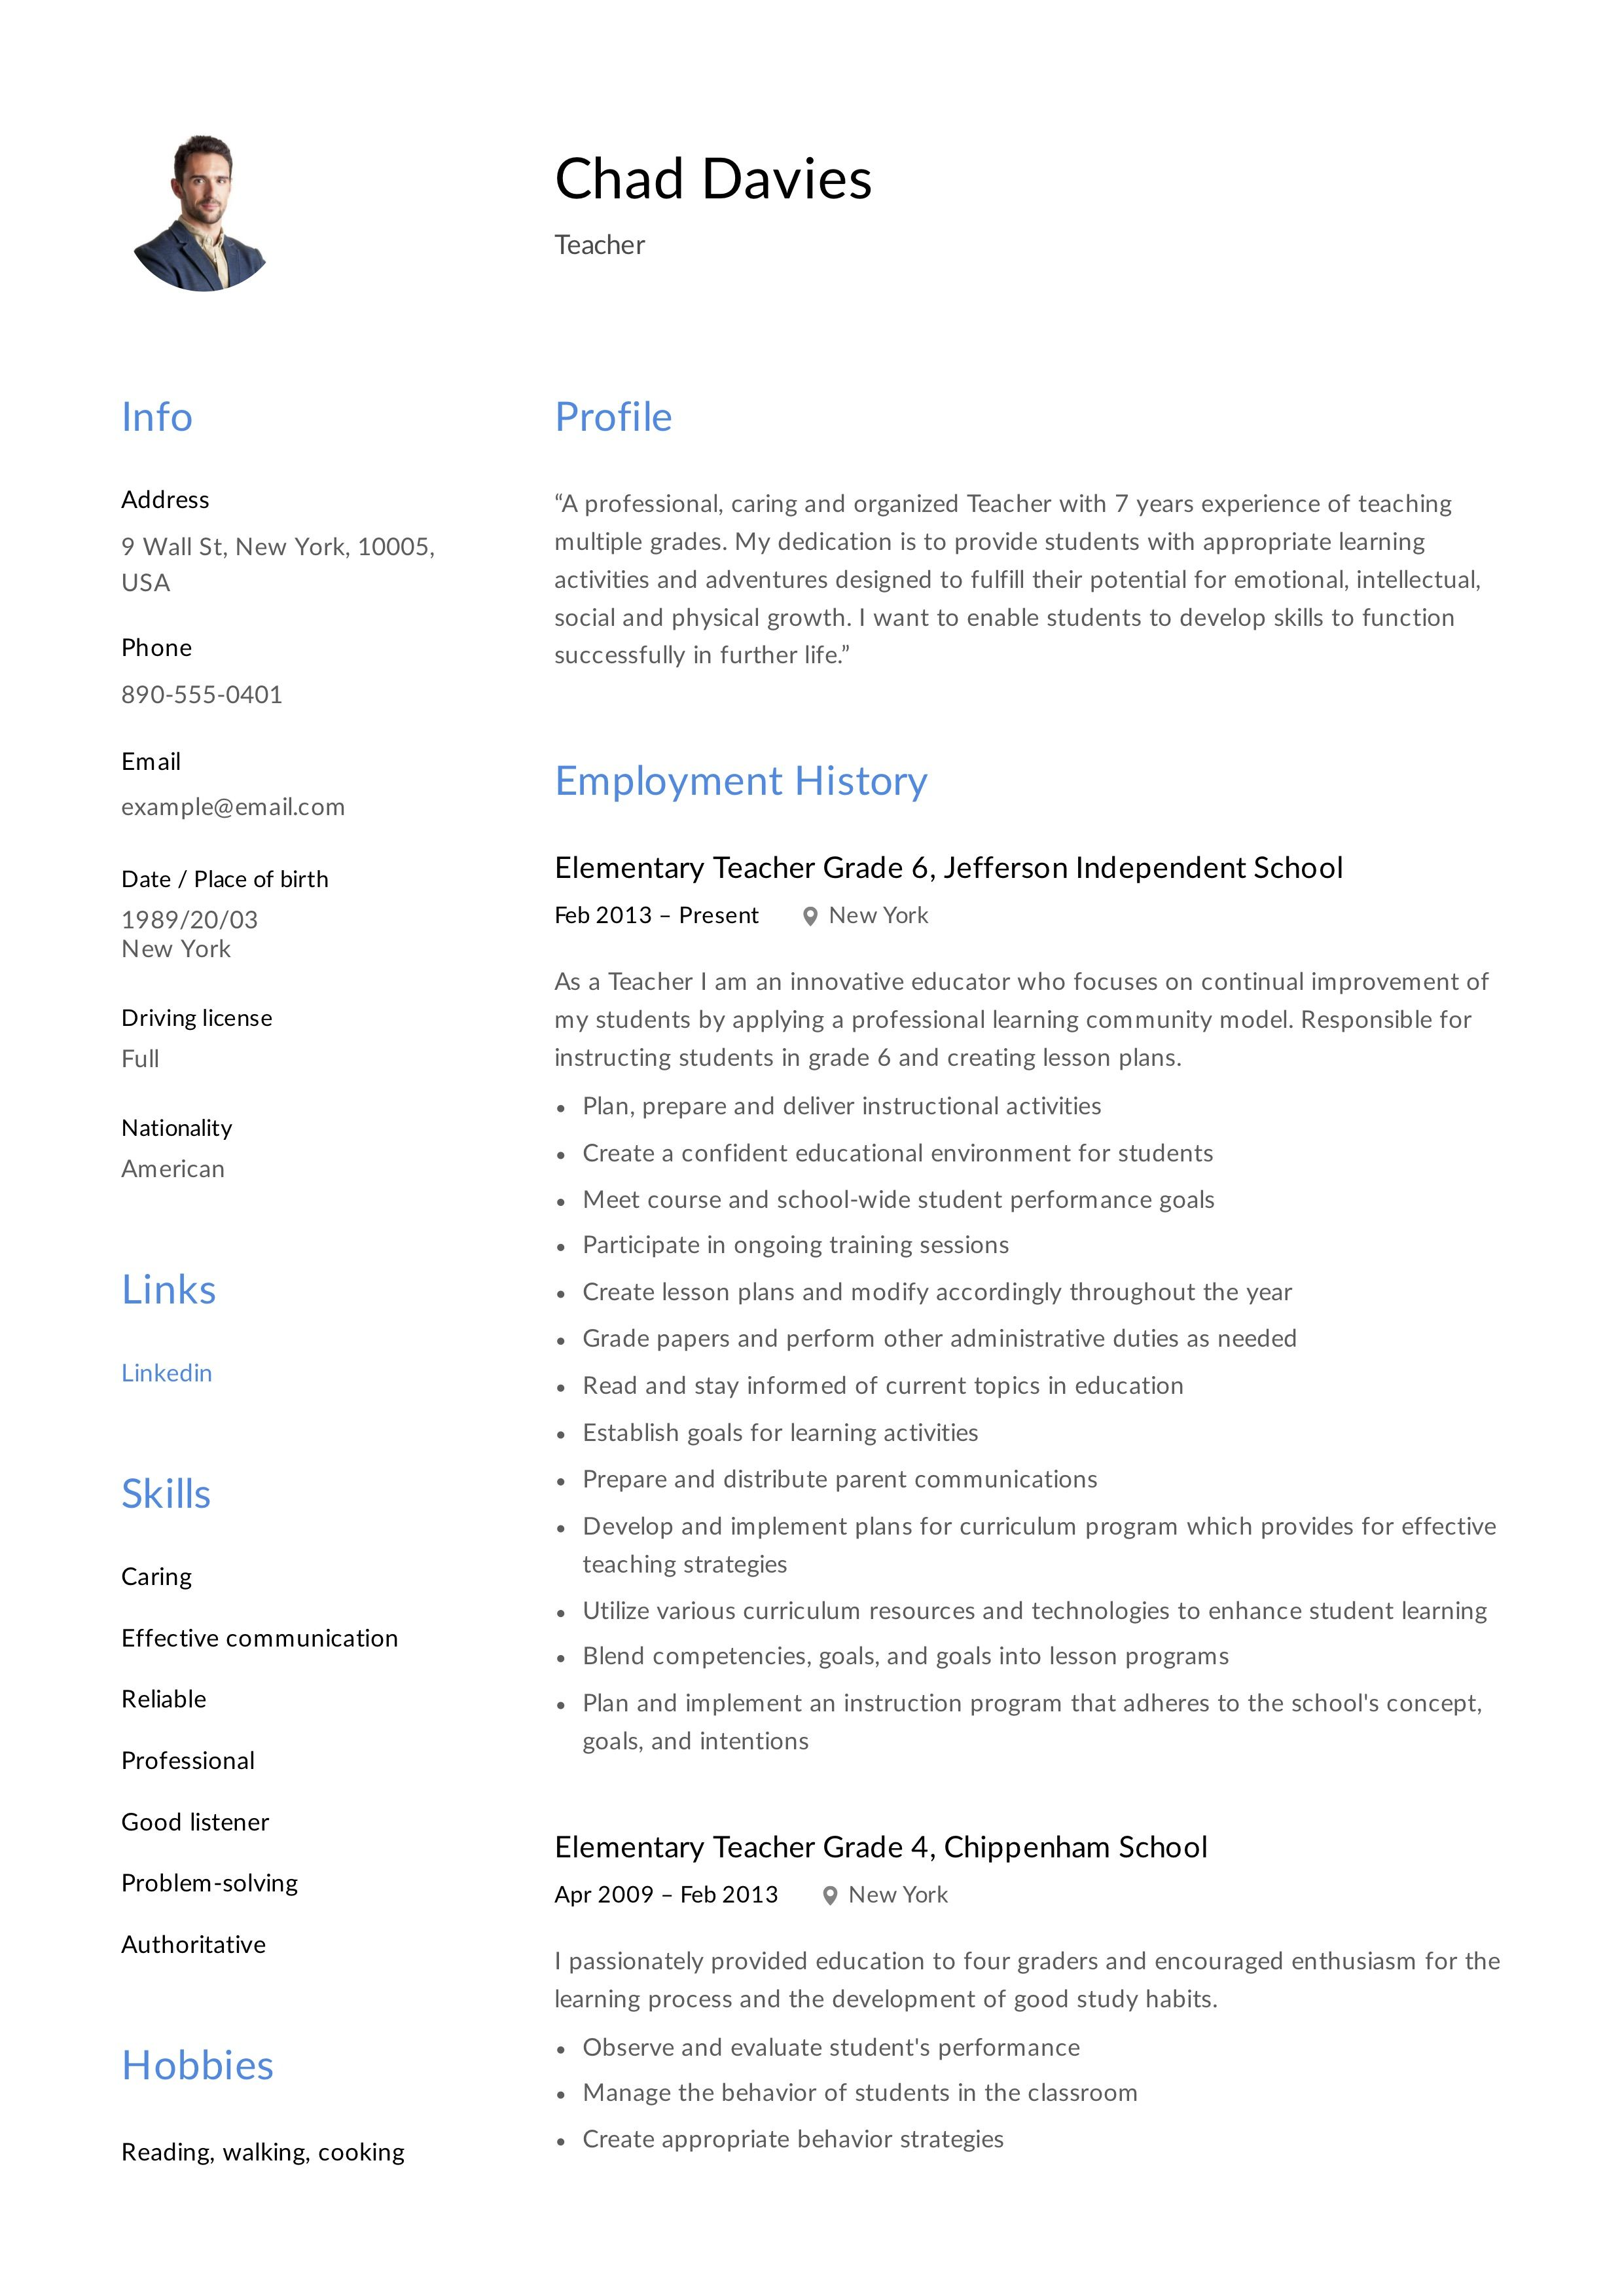 Teacher Resume, template, design, tips, examples, free